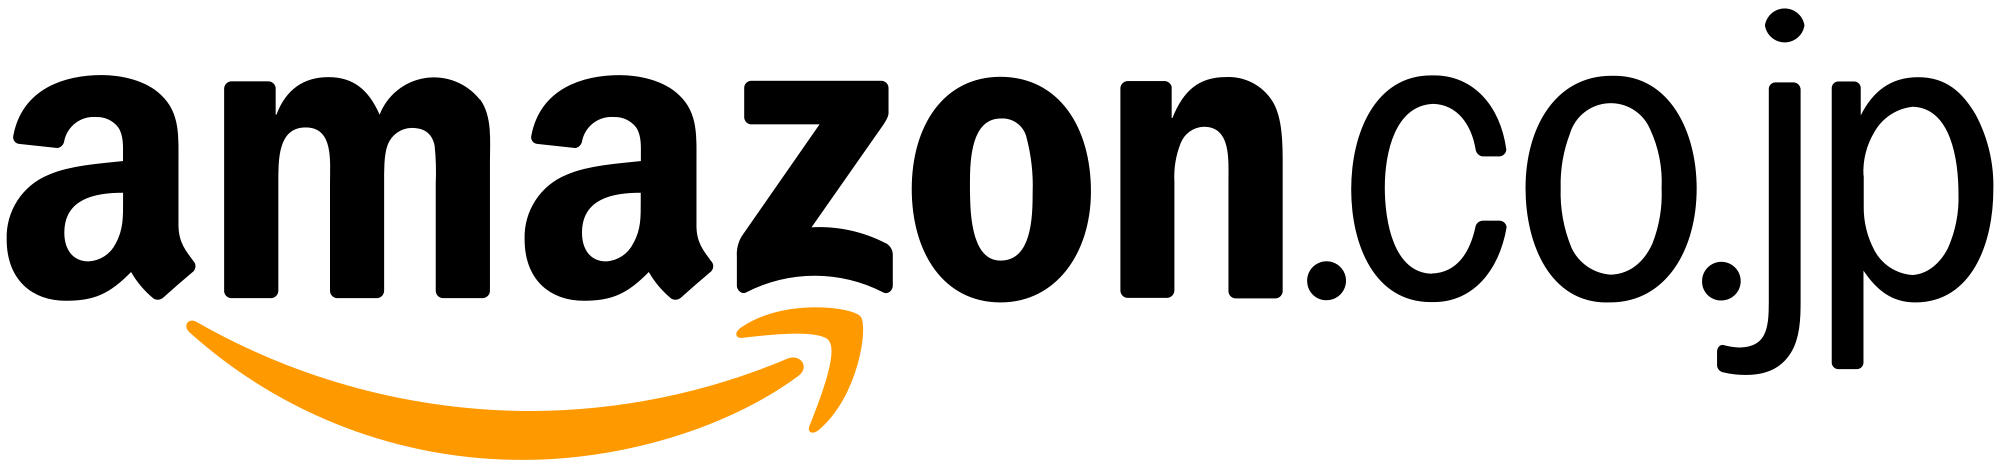 amazon-japan-logo.png